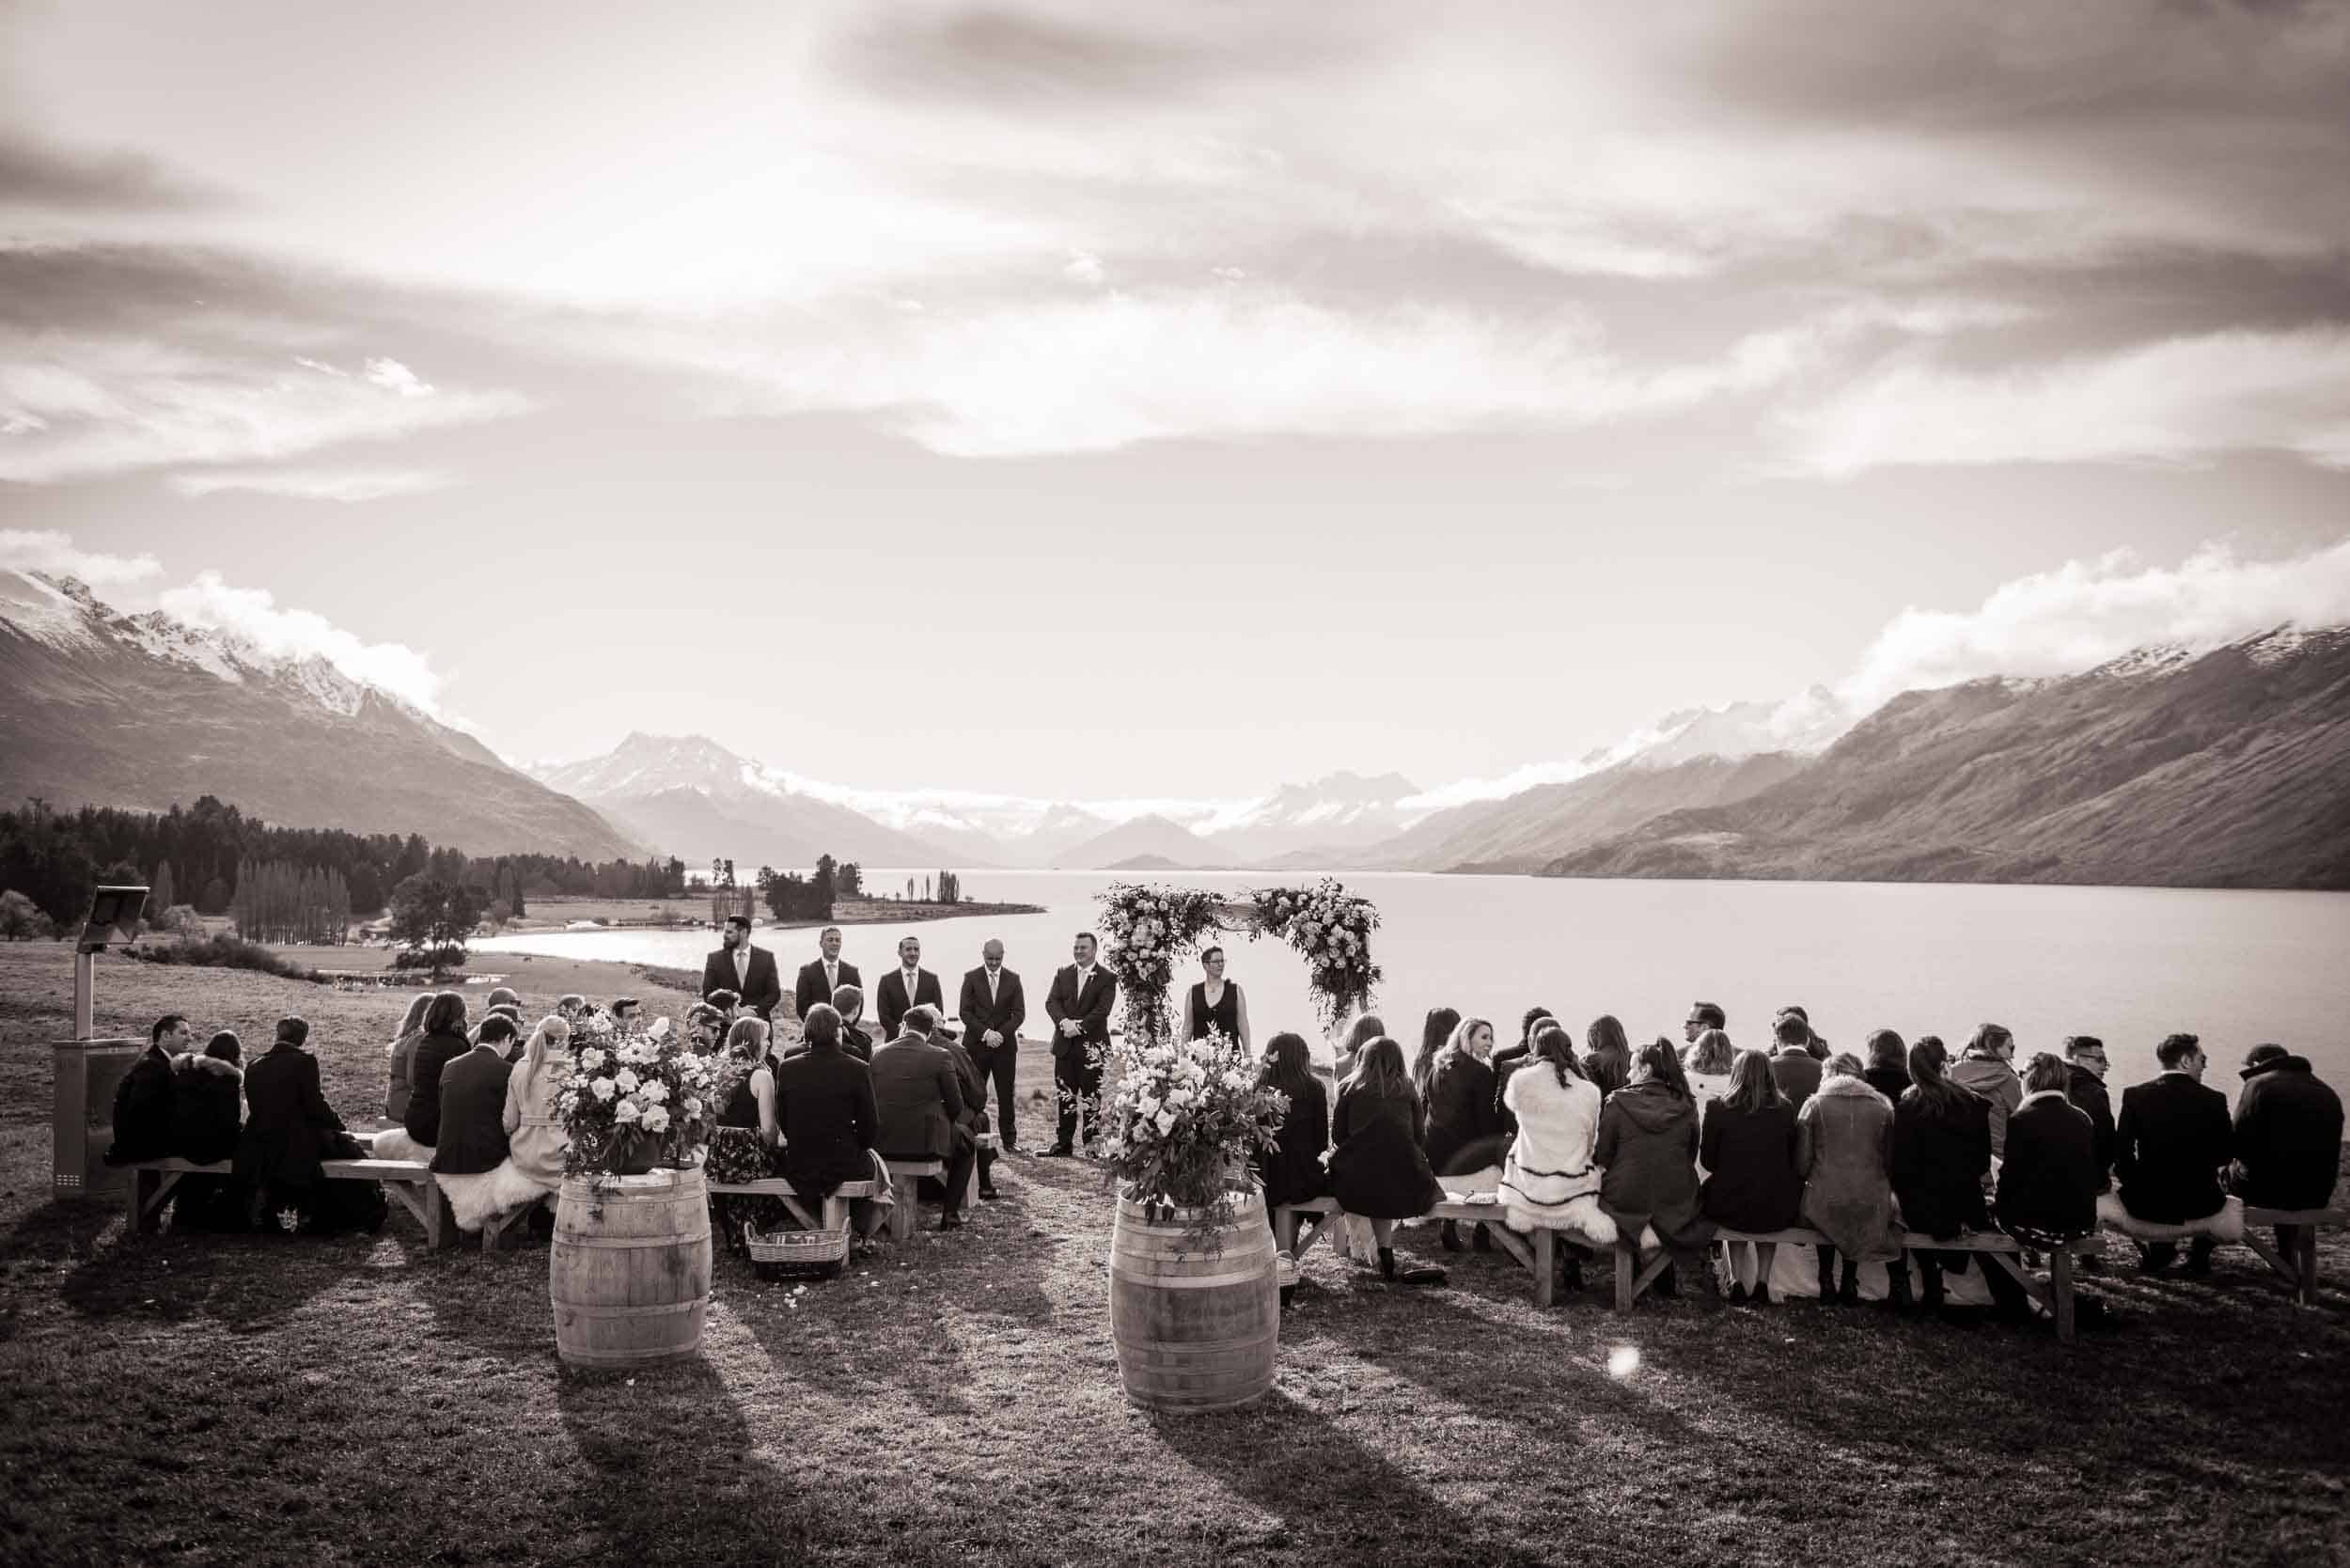 Mount Nicholas Wedding Evanna & Liam's Mount Nicholas Wedding Queenstown Farm wedding fallon photography